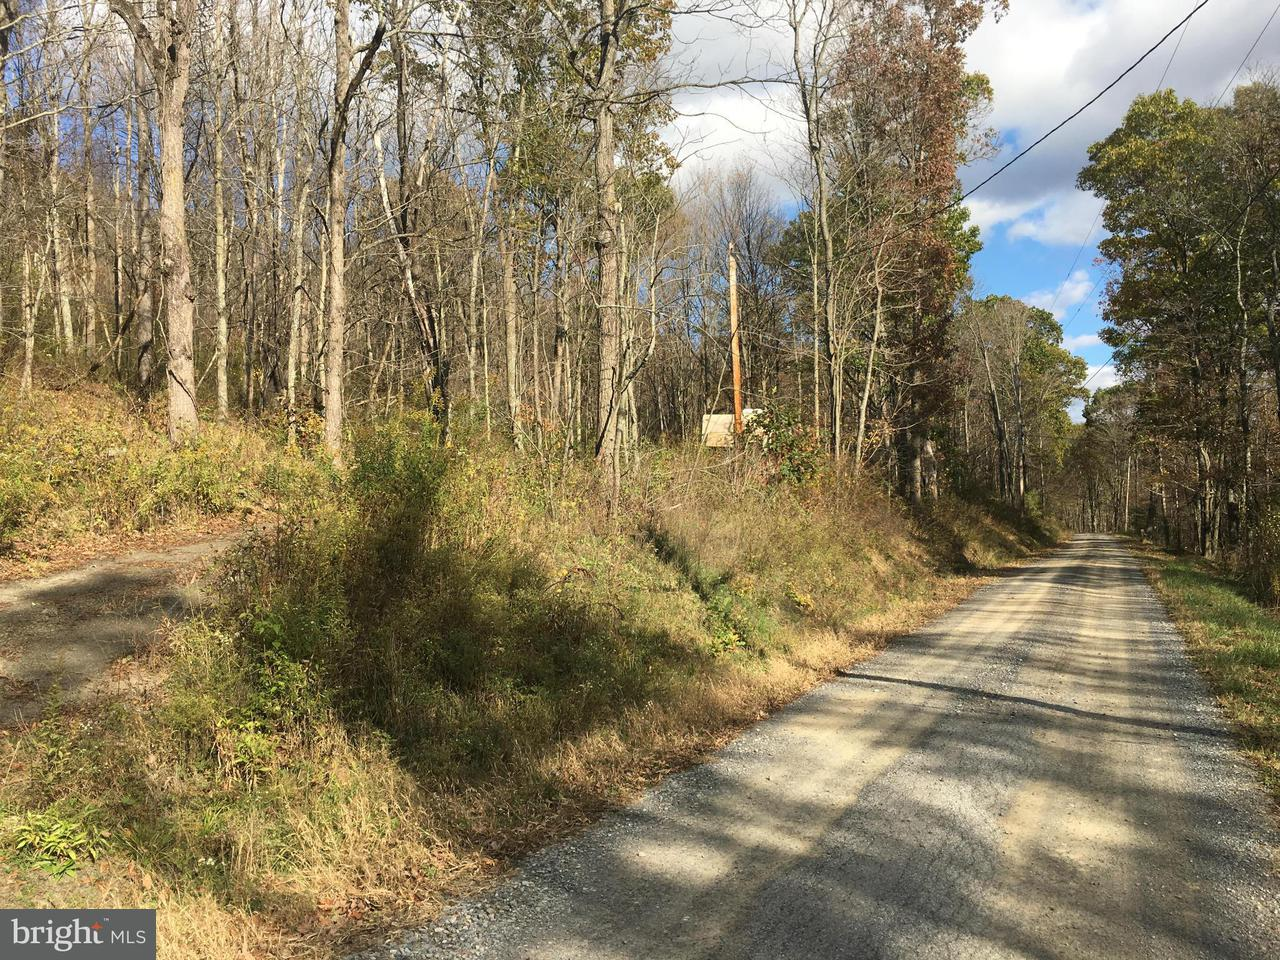 Land for Sale at 0 Teaberry Hollow Road Schellsburg, Pennsylvania 15559 United States